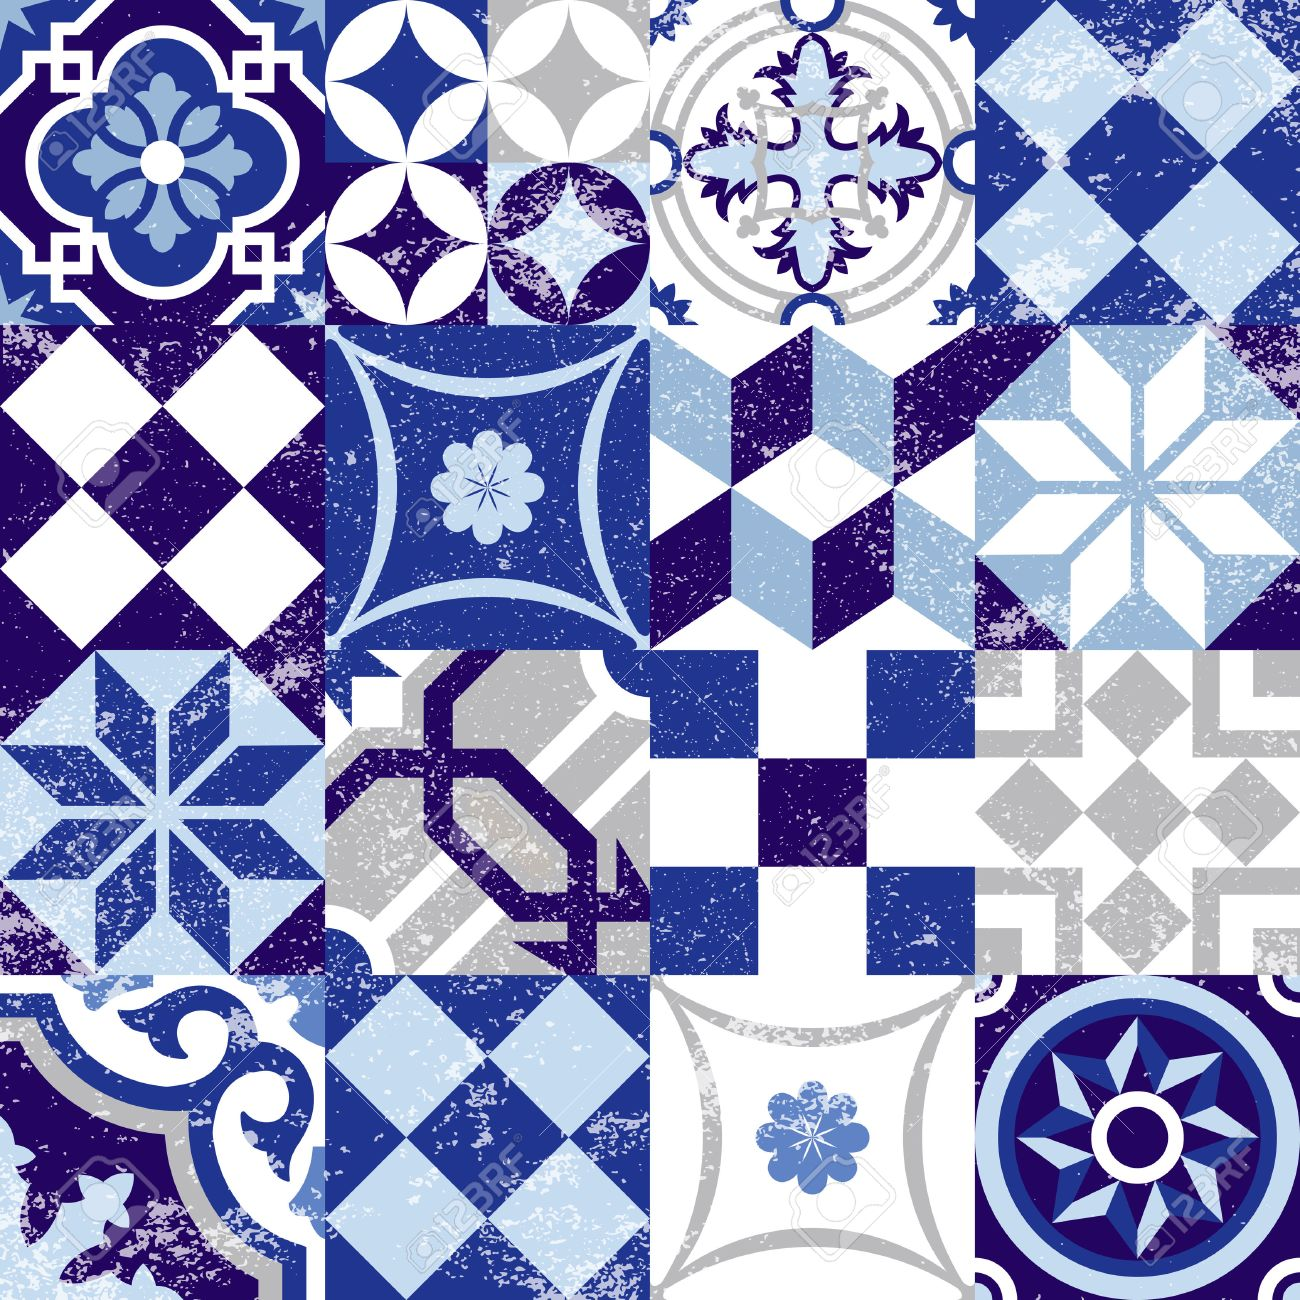 Vintage patchwork seamless pattern background with traditional blue tile decoration, classic mosaic style. EPS10 vector. - 50354349